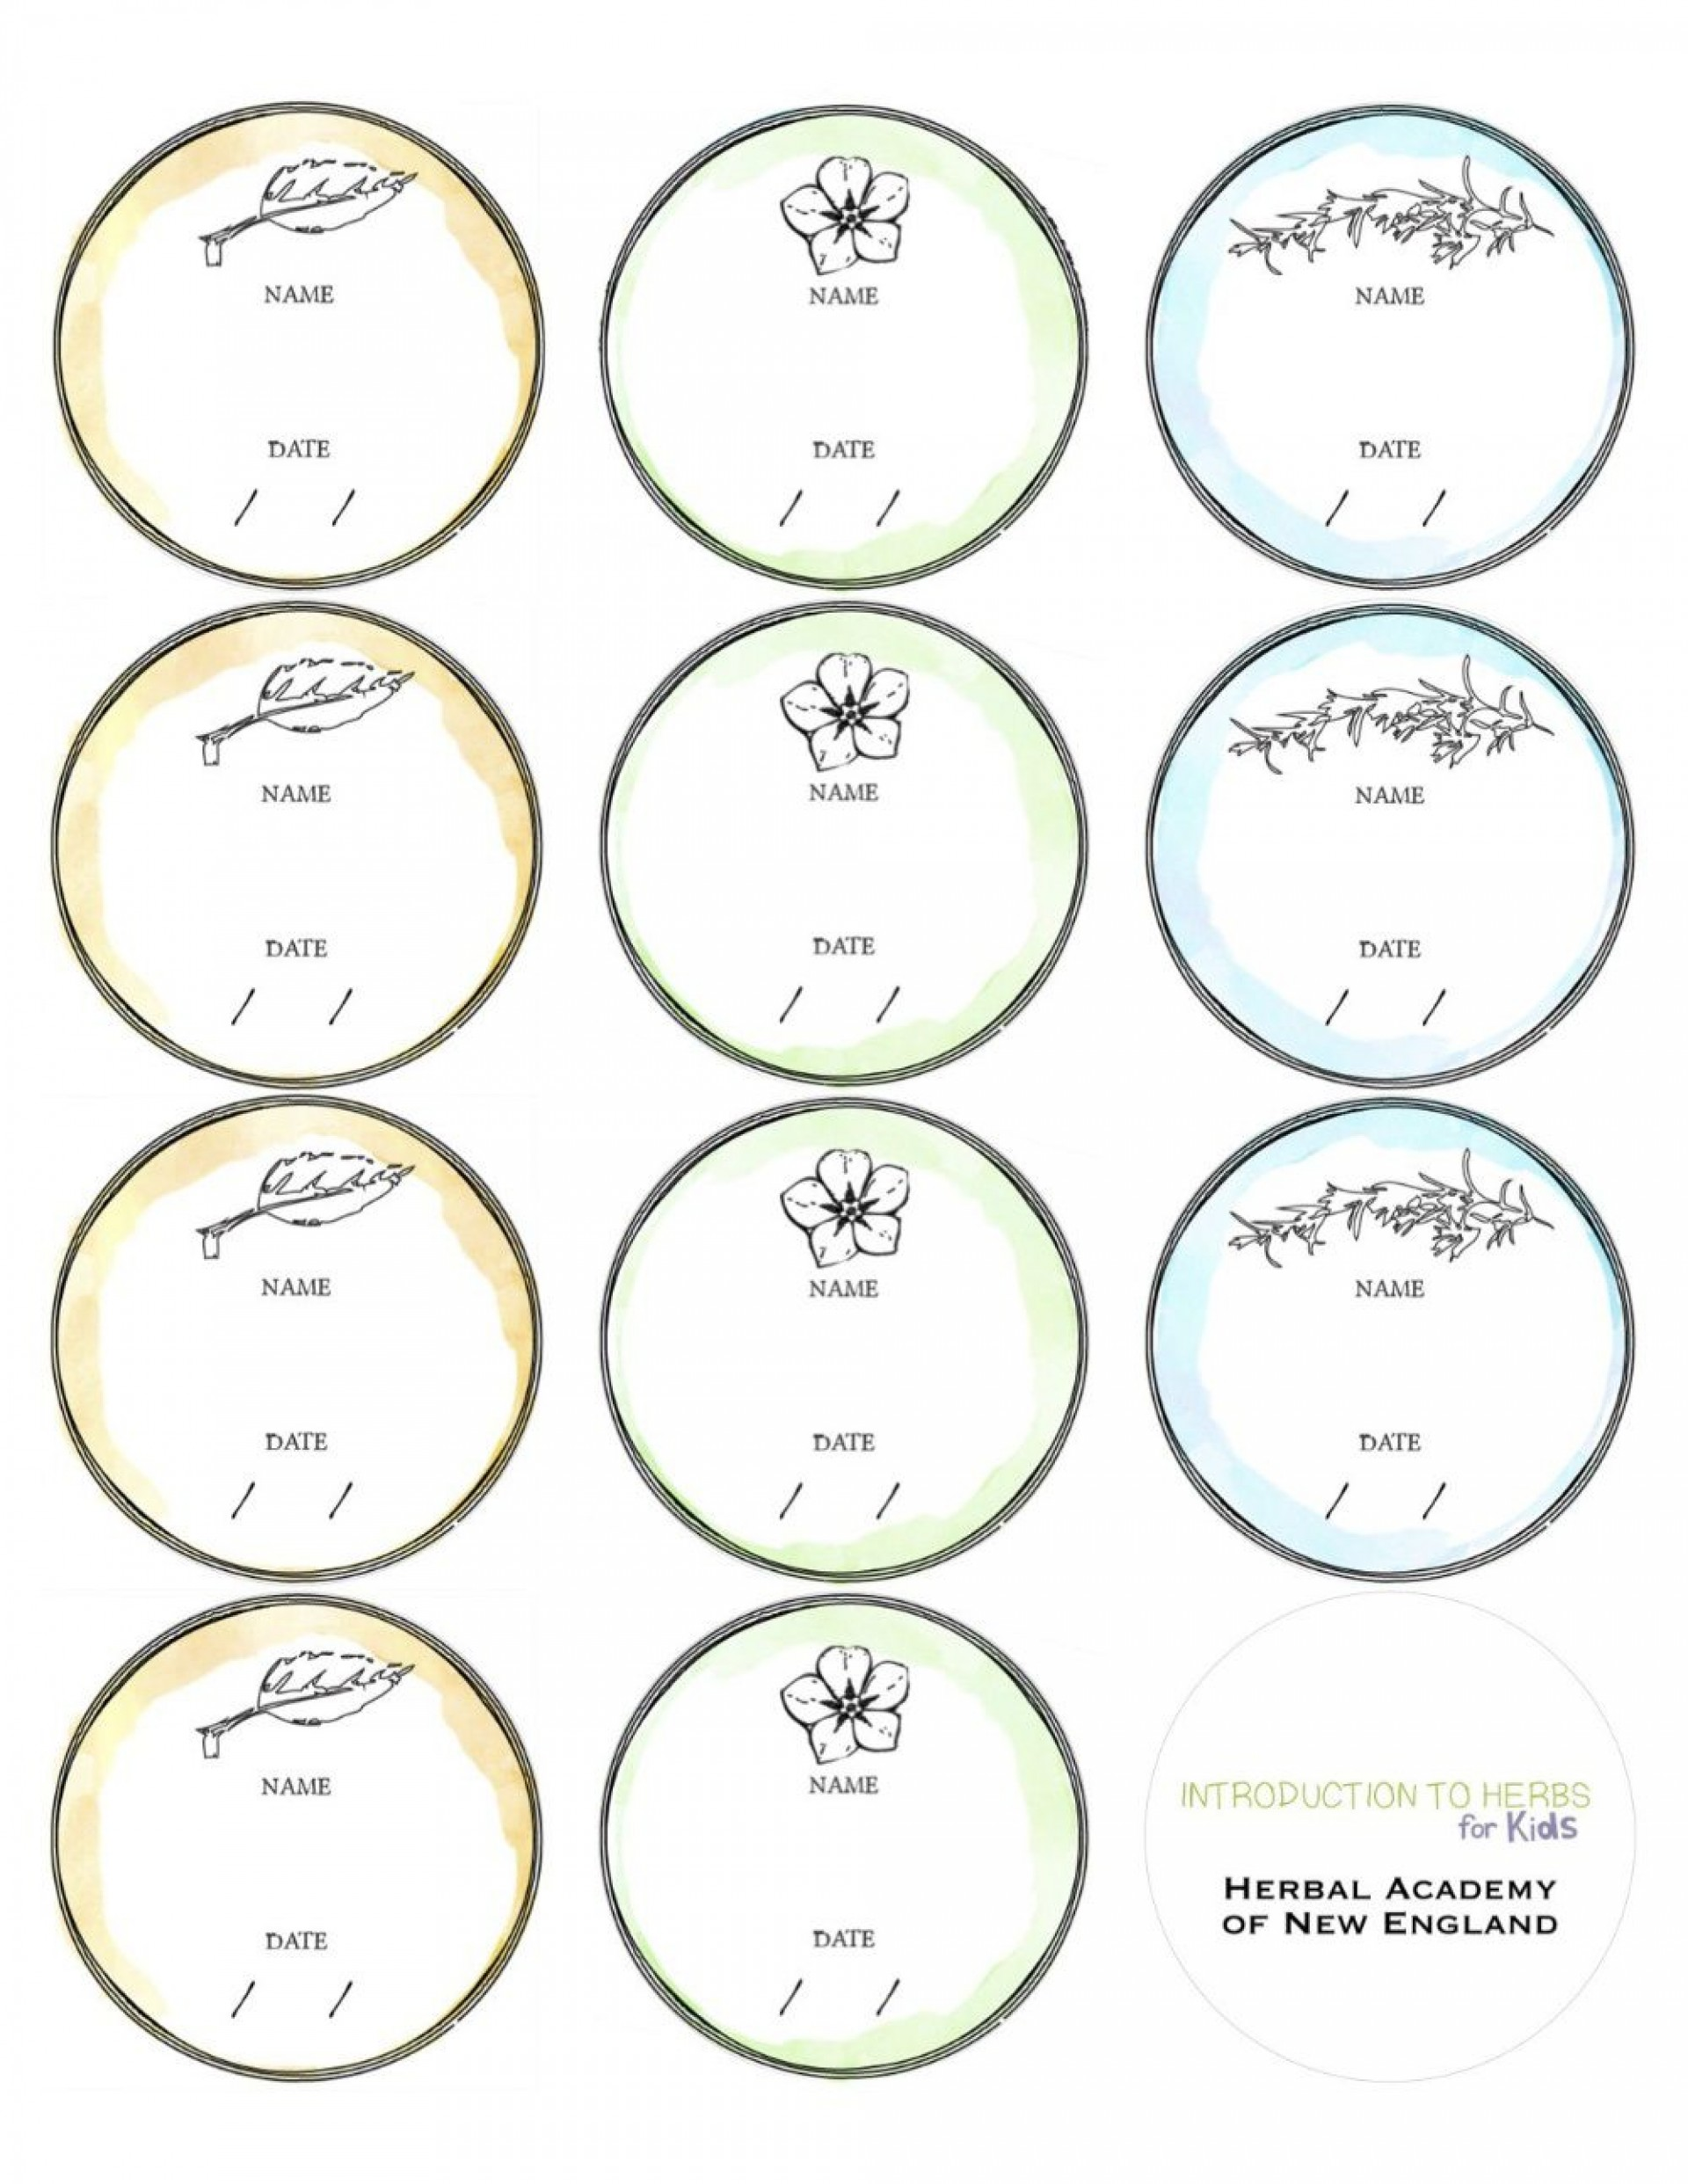 005 Exceptional Mason Jar Label Template Inspiration  Word Avery1920